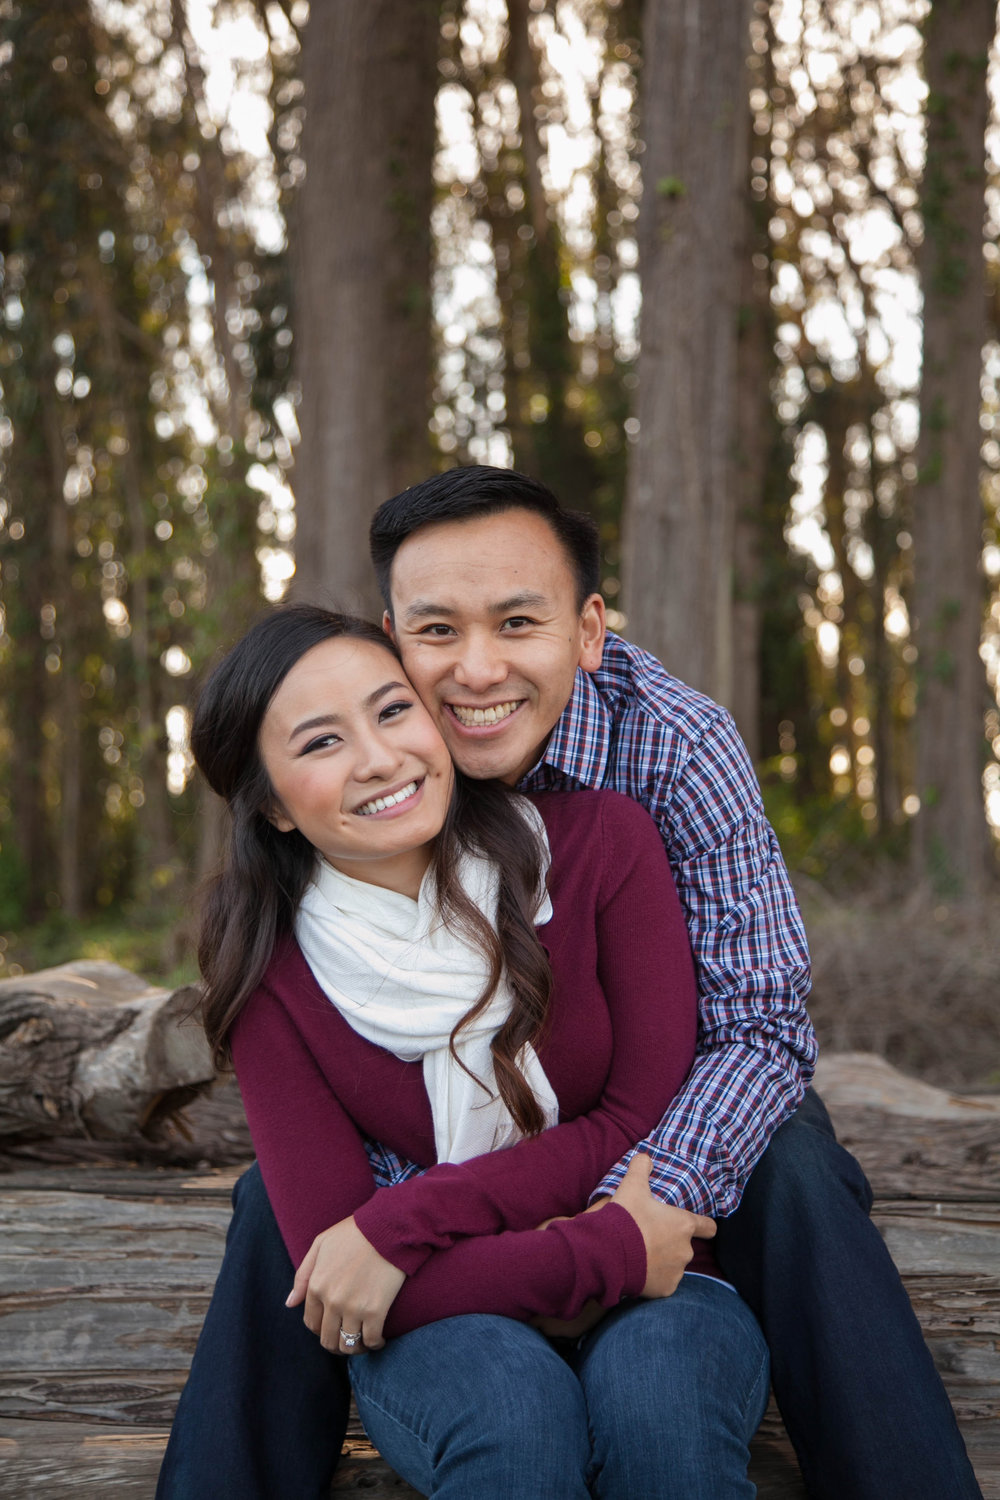 Meo Baaklini-San Francisco Presidio Engagement Photographer29.jpg